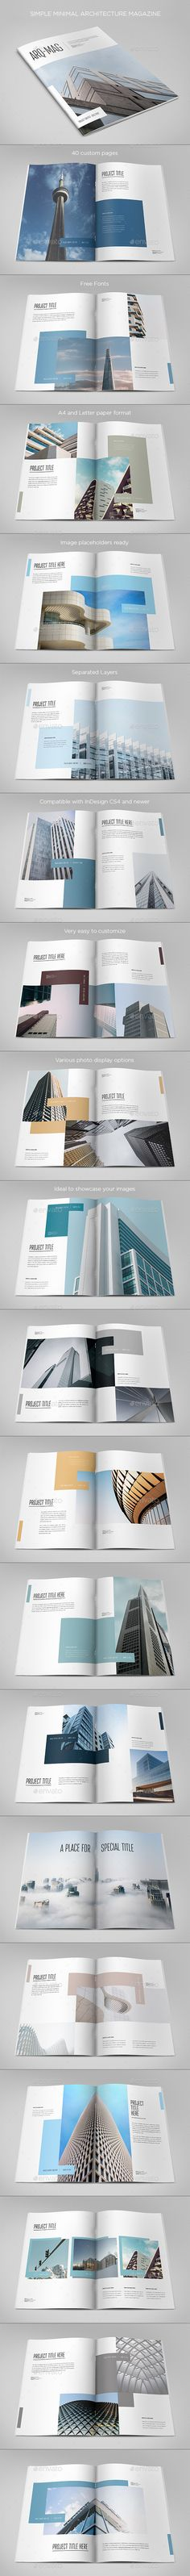 Simple Minimal Architecture Magazine by AbraDesign SIMPLE MINIMAL ARCHITECTURE MAGAZINEClean, modern and simple design ideal for any purposes. Very easy to adapt and customize. DET